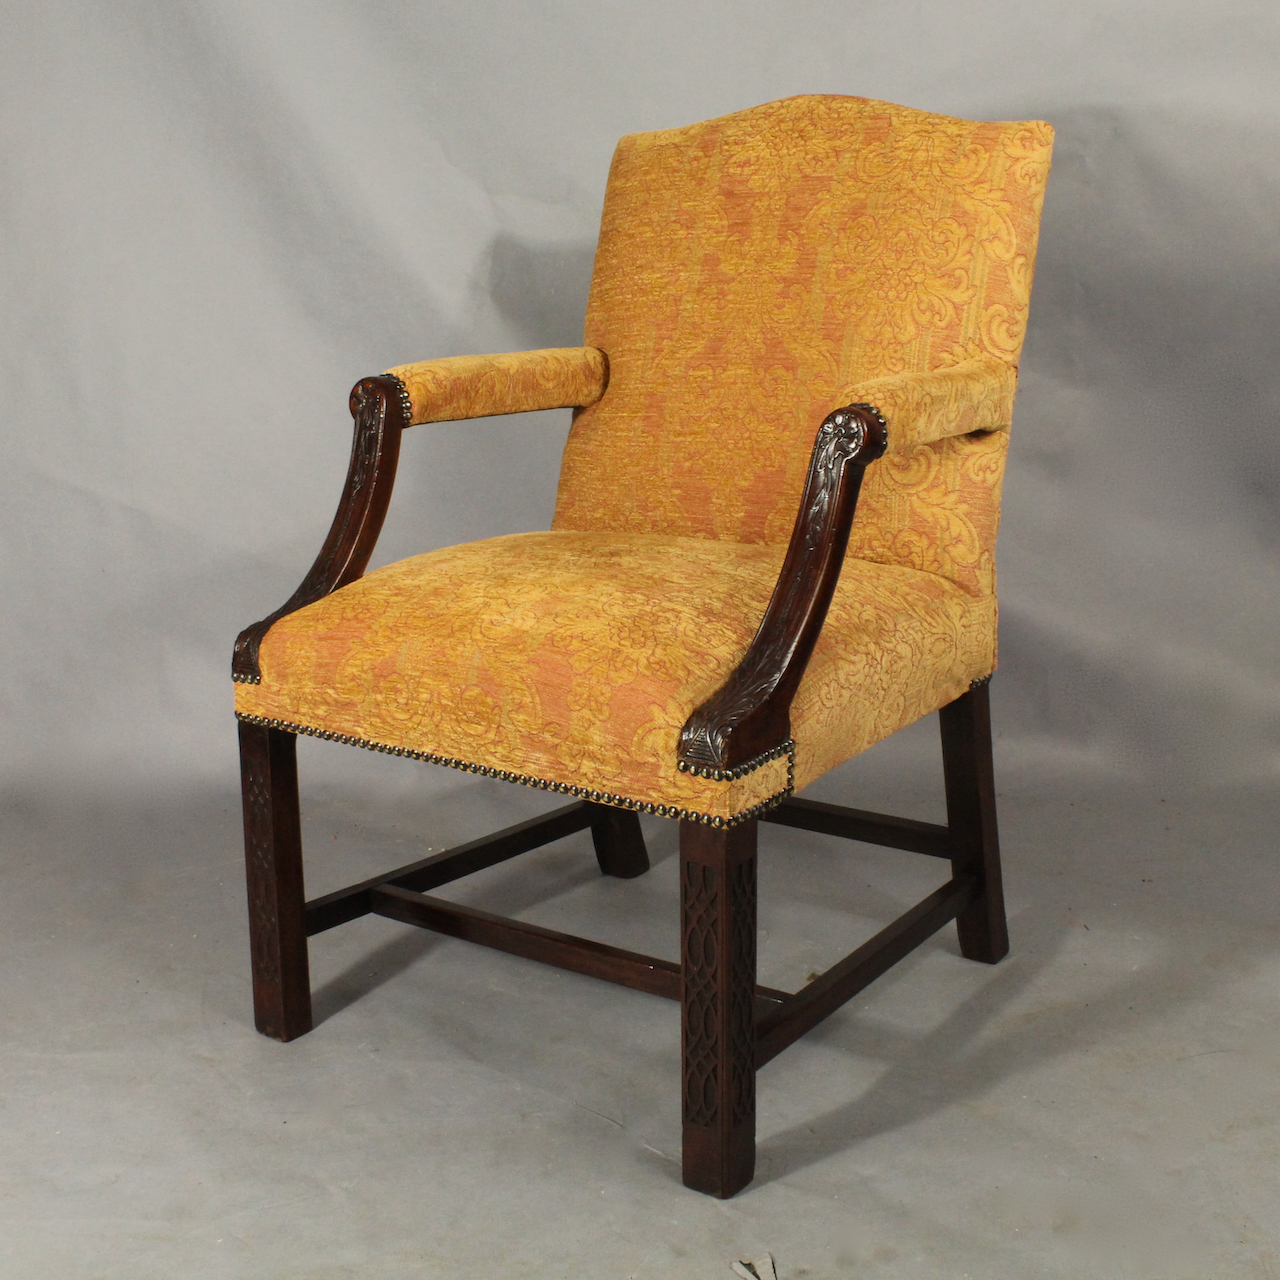 Blind Fret Armchair